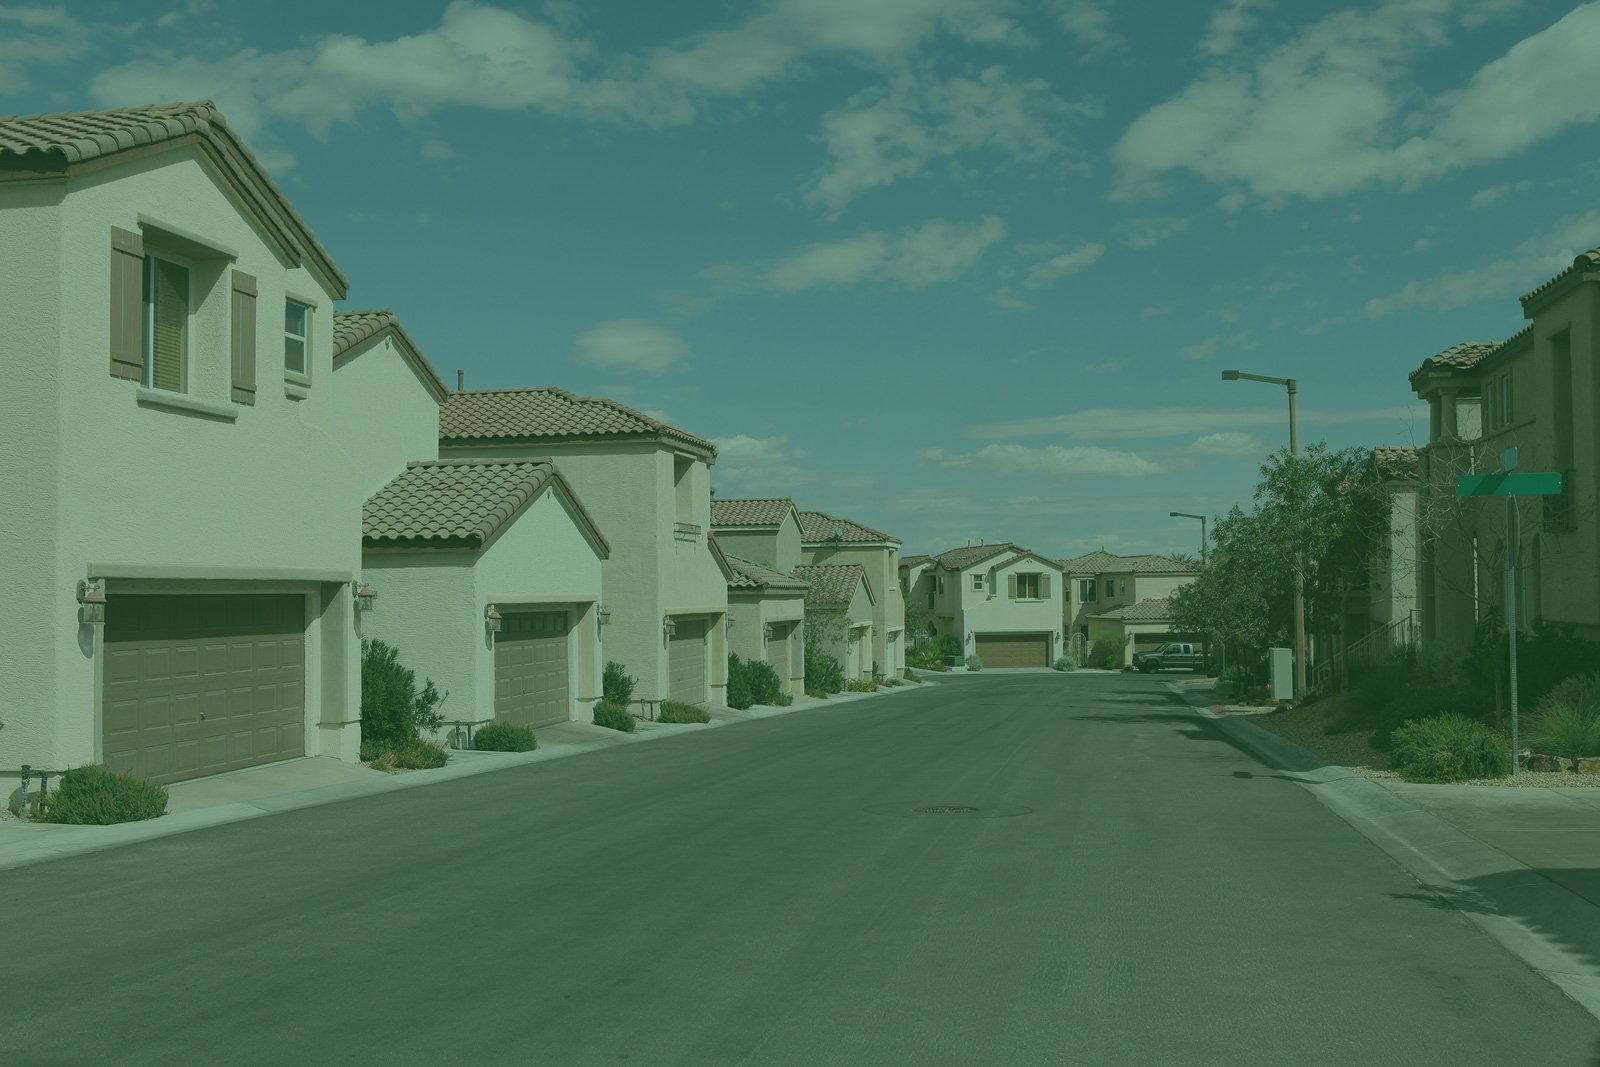 A neighborhood in Nevada